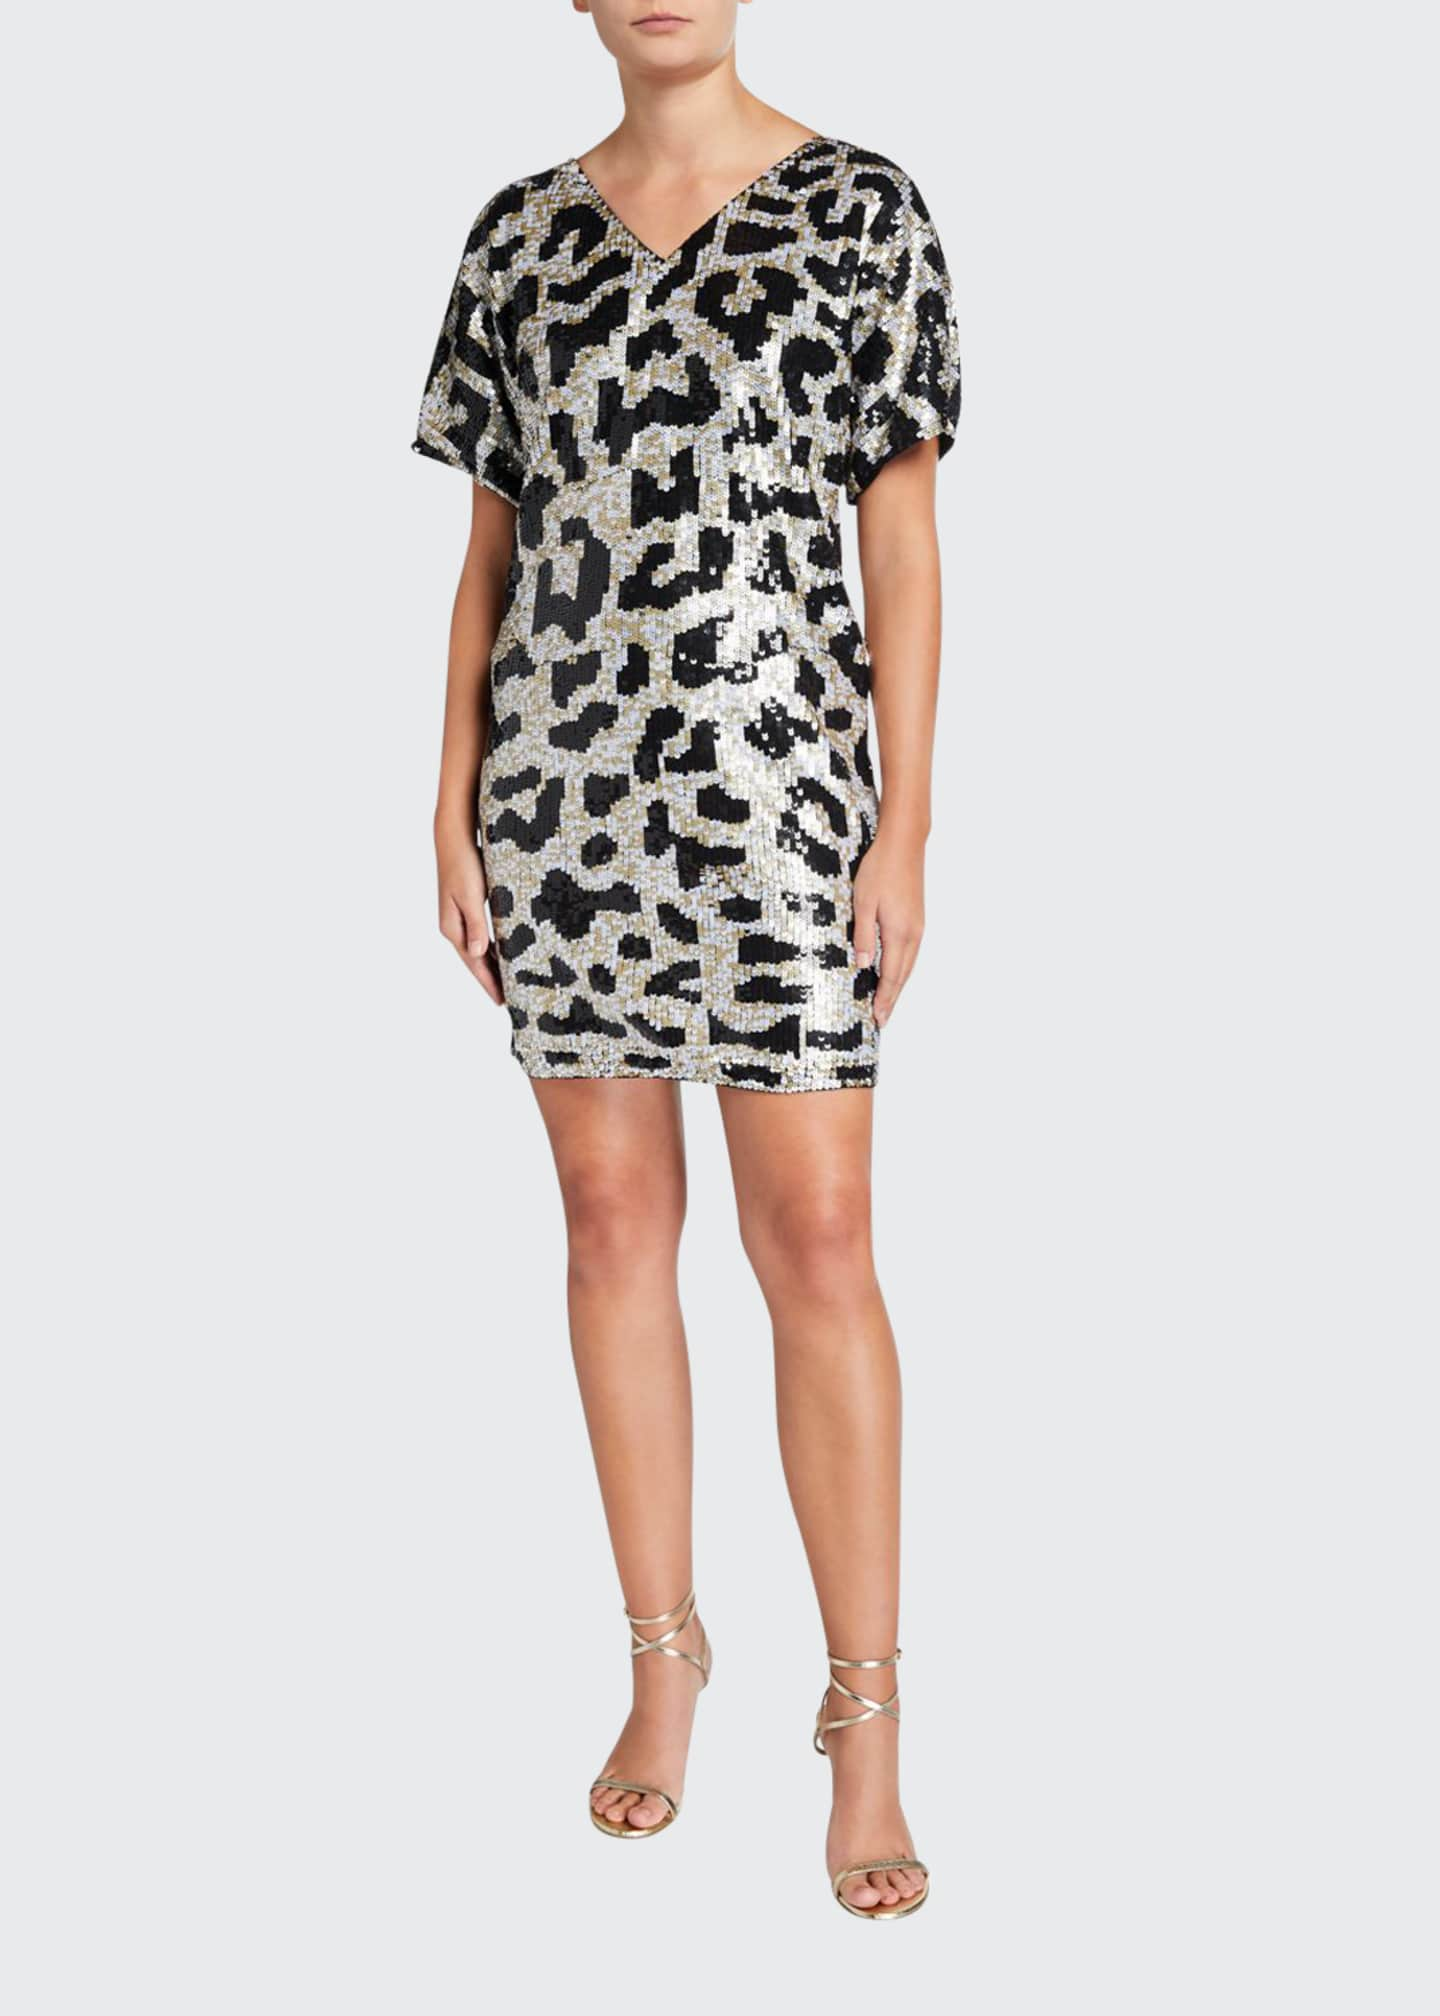 Aidan Mattox Leopard Sequin V-Neck Short-Sleeve Mini Dress